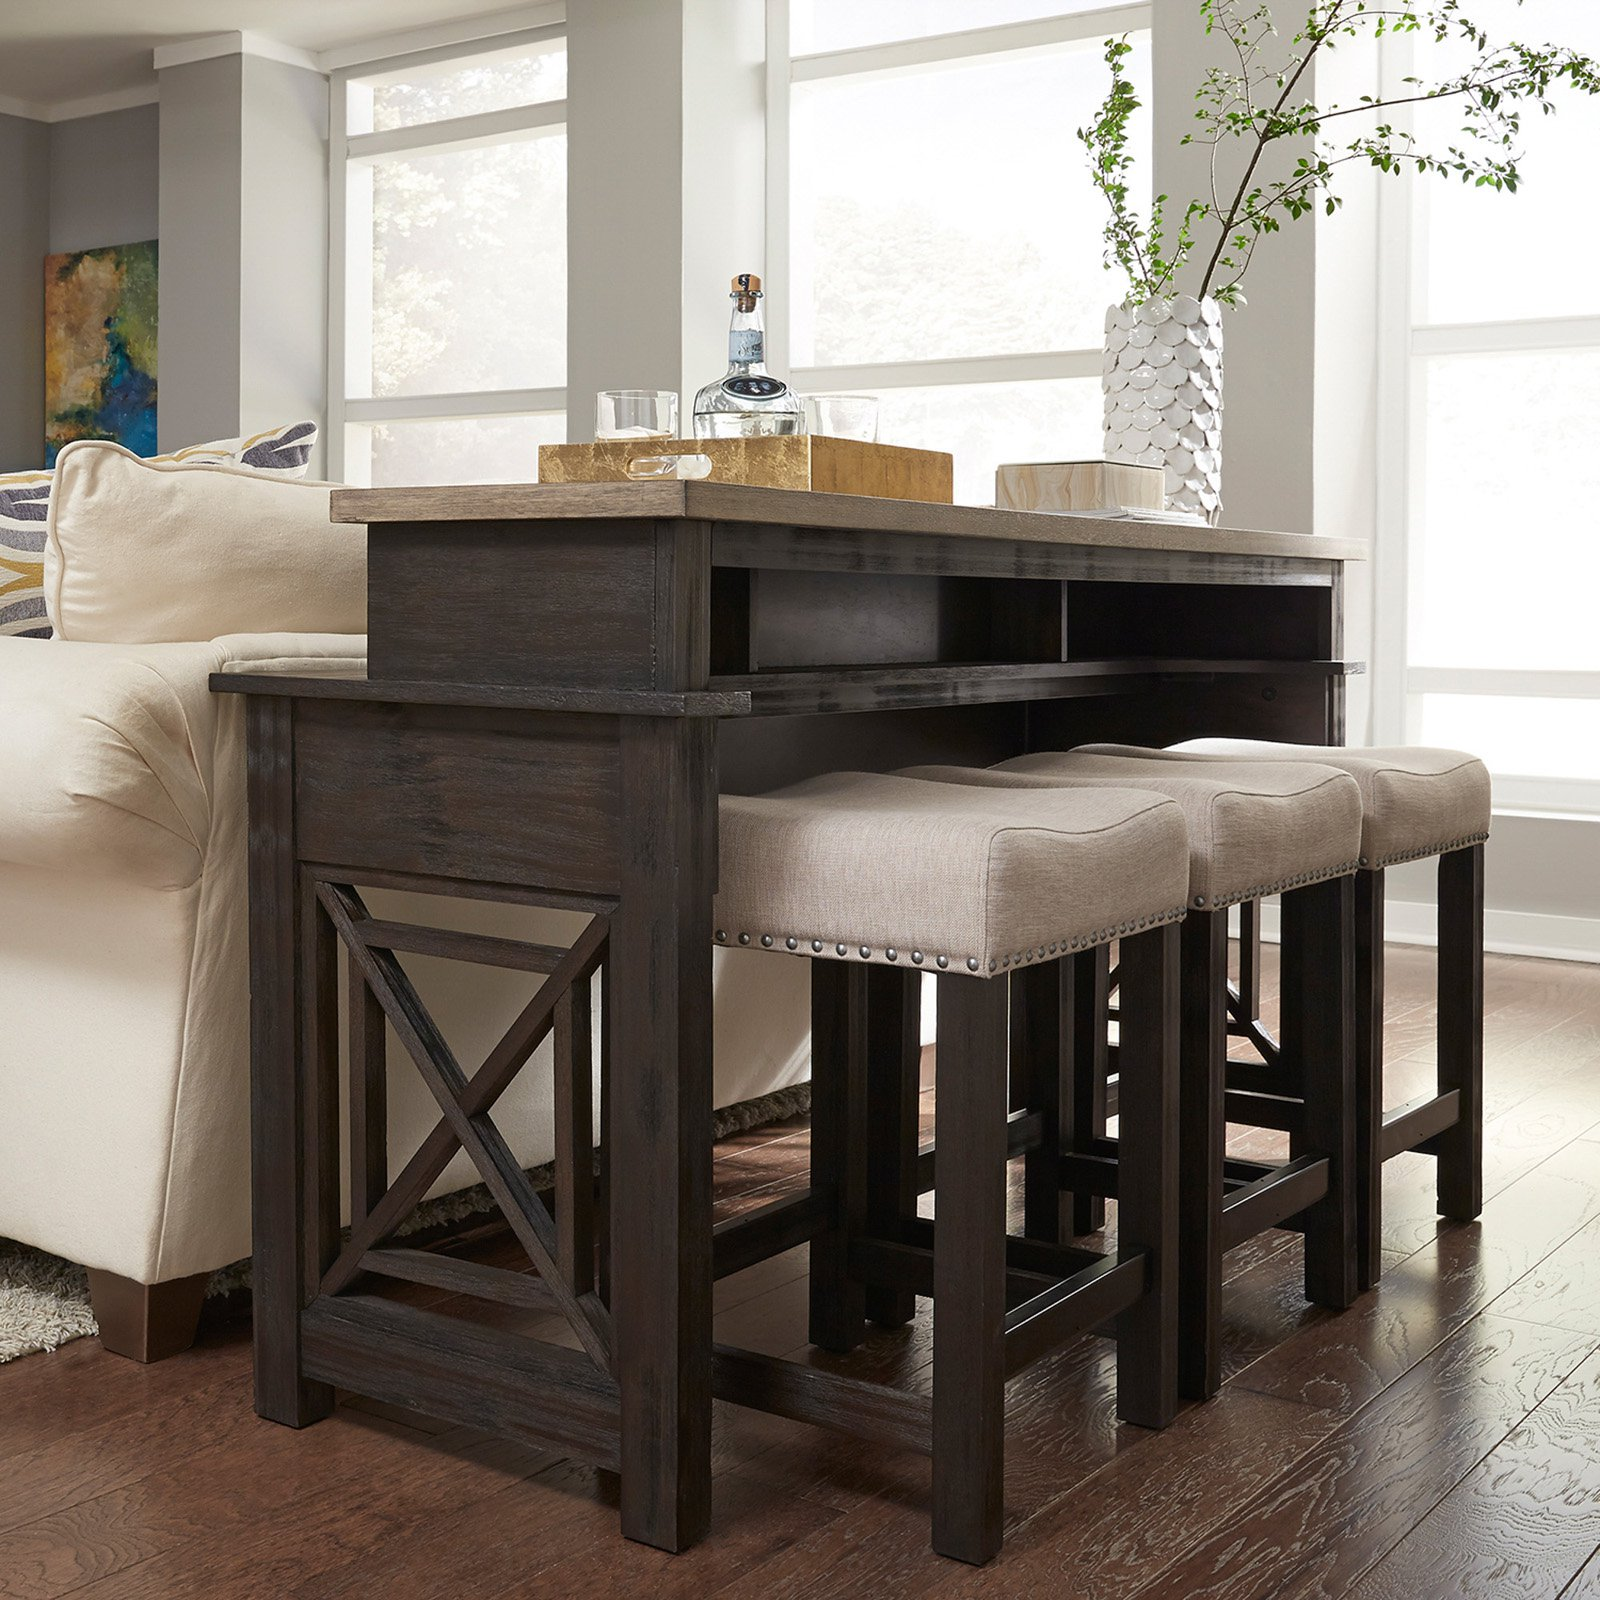 Liberty Furniture Industries Heatherbrook Console Table with Stools